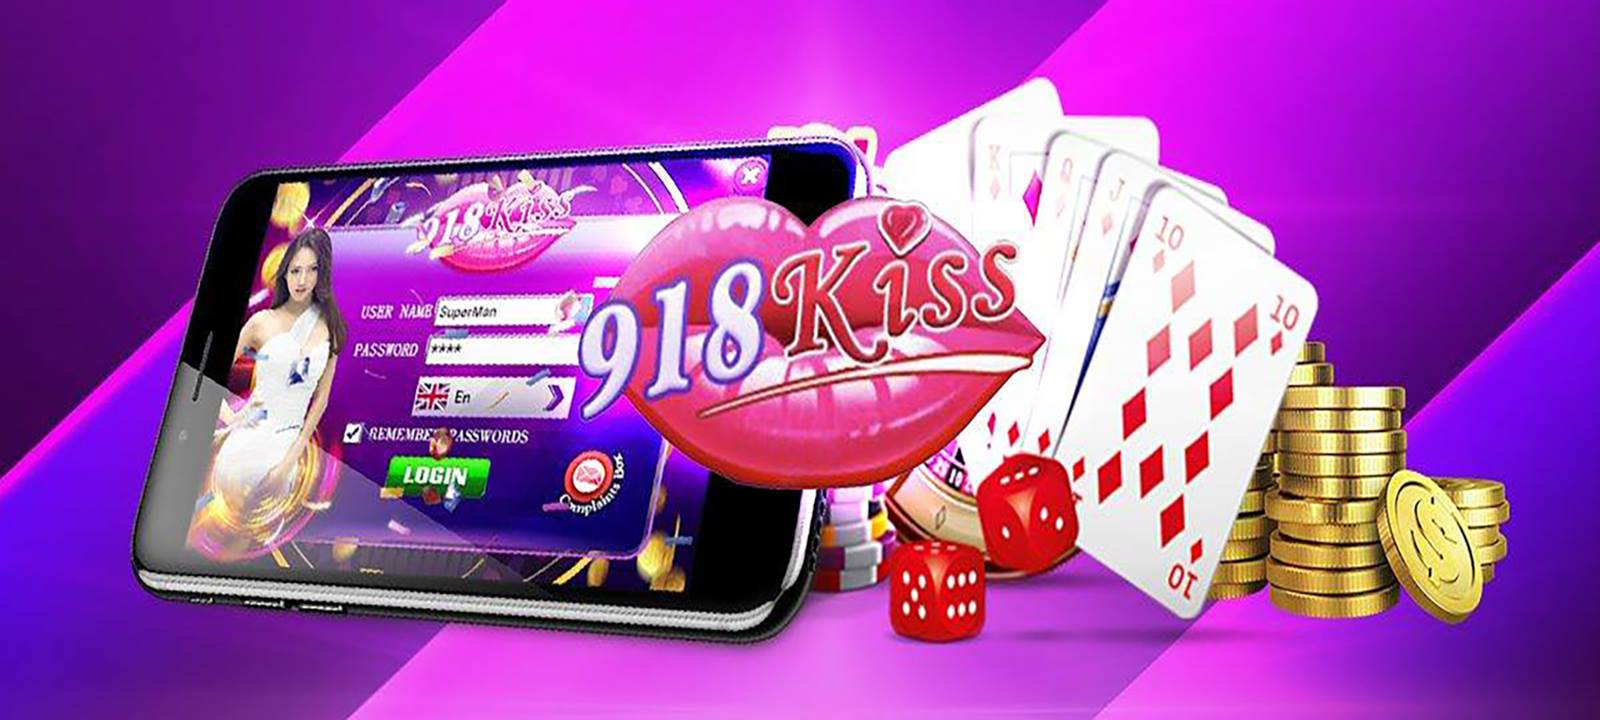 The world's largest online gambling game!